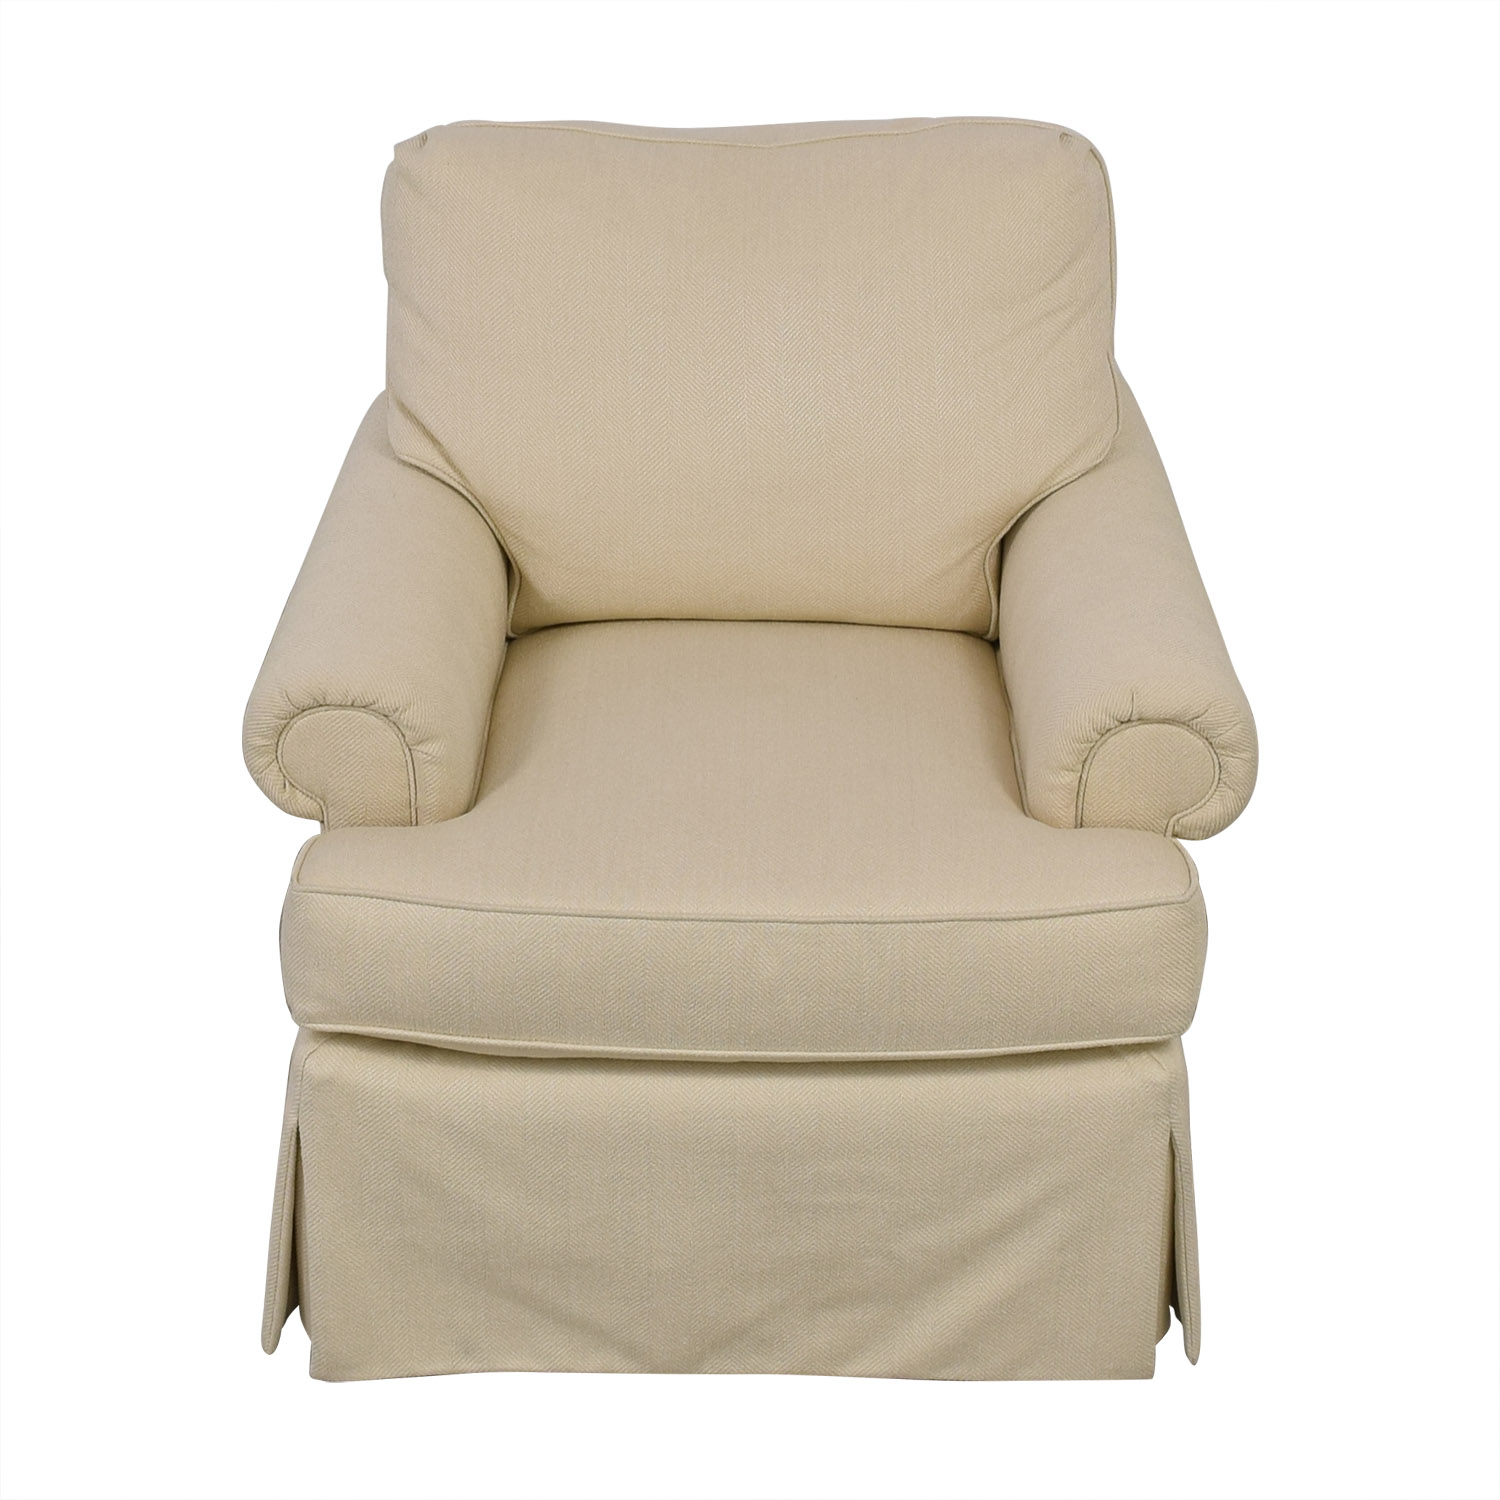 buy Stanford Furniture English Armchair Stanford Furniture Accent Chairs